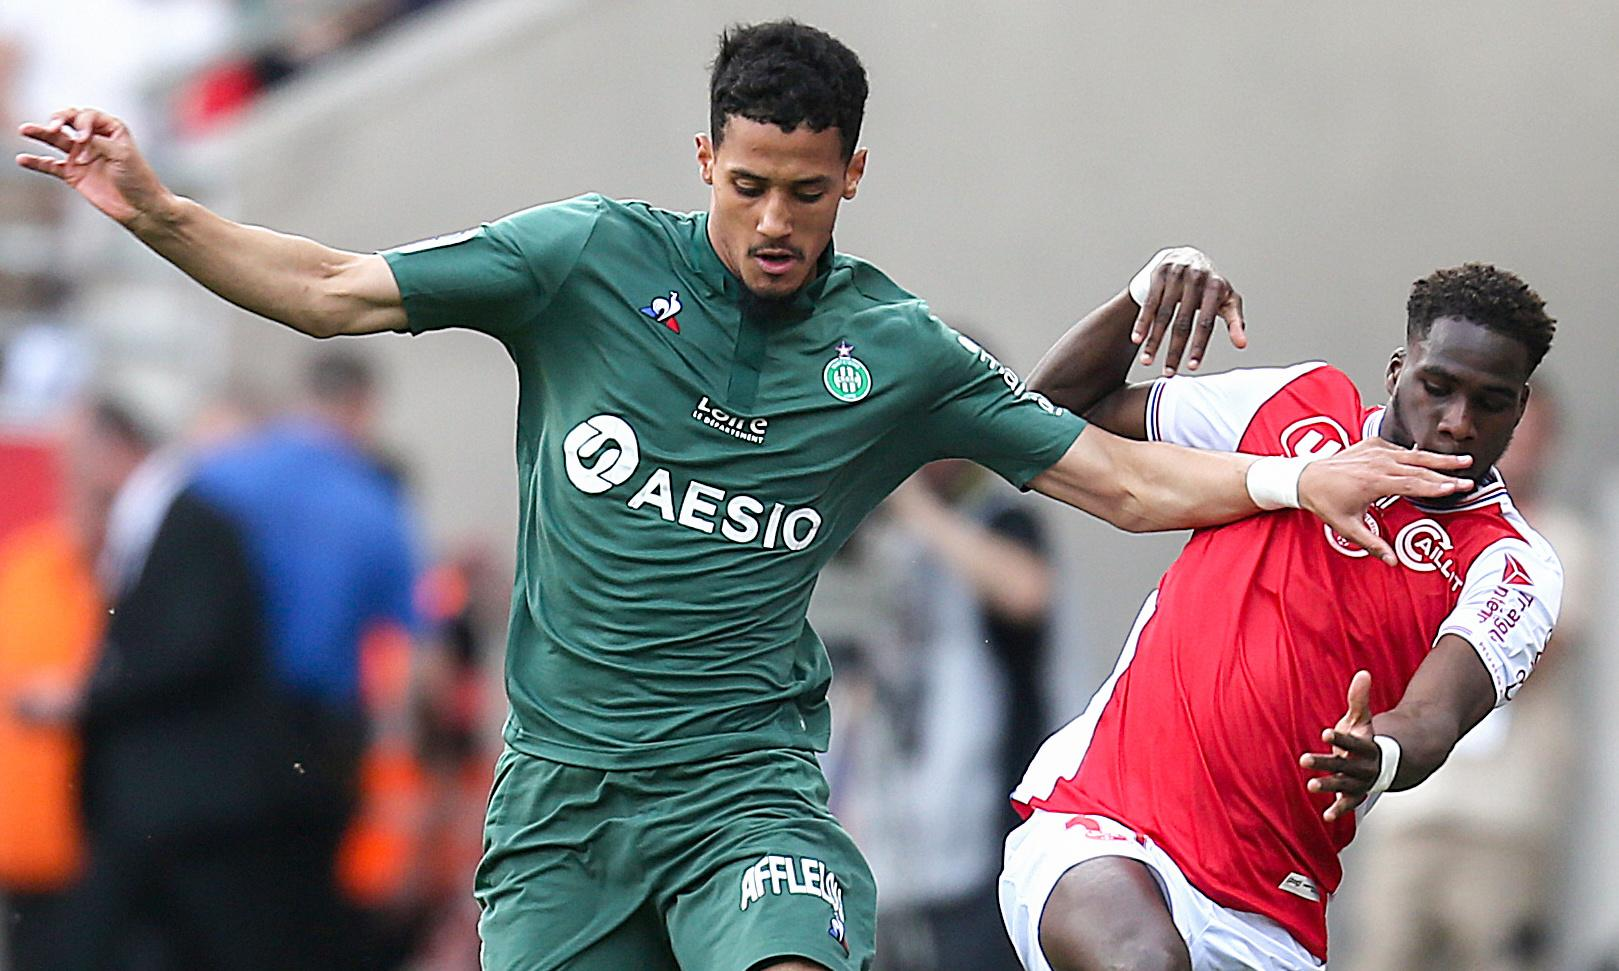 Arsenal to sign William Saliba for €30m and loan him back to St Etienne